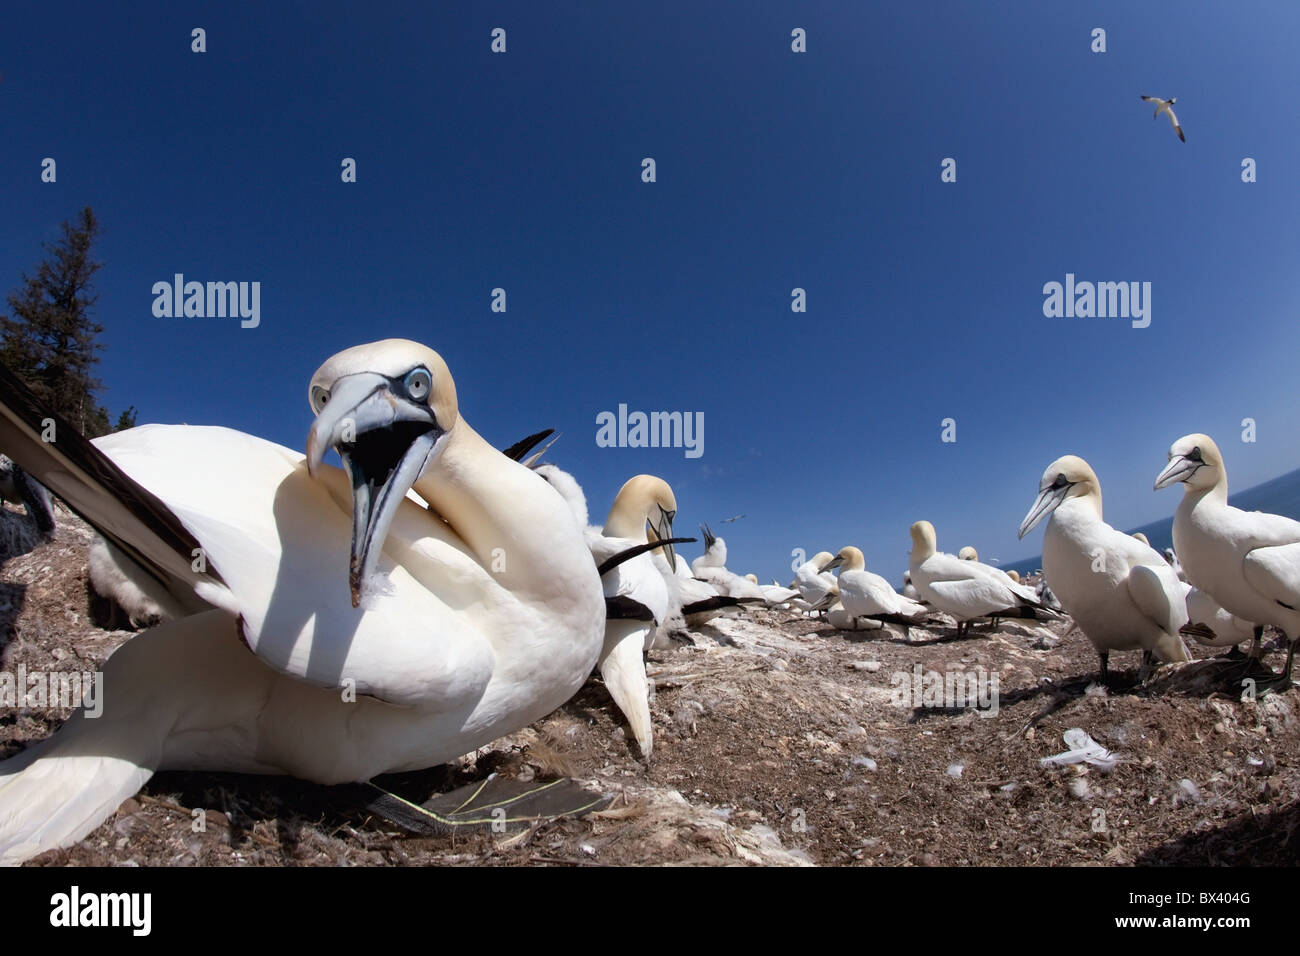 Gannet About To Bite; Perce', Quebec, Canada - Stock Image